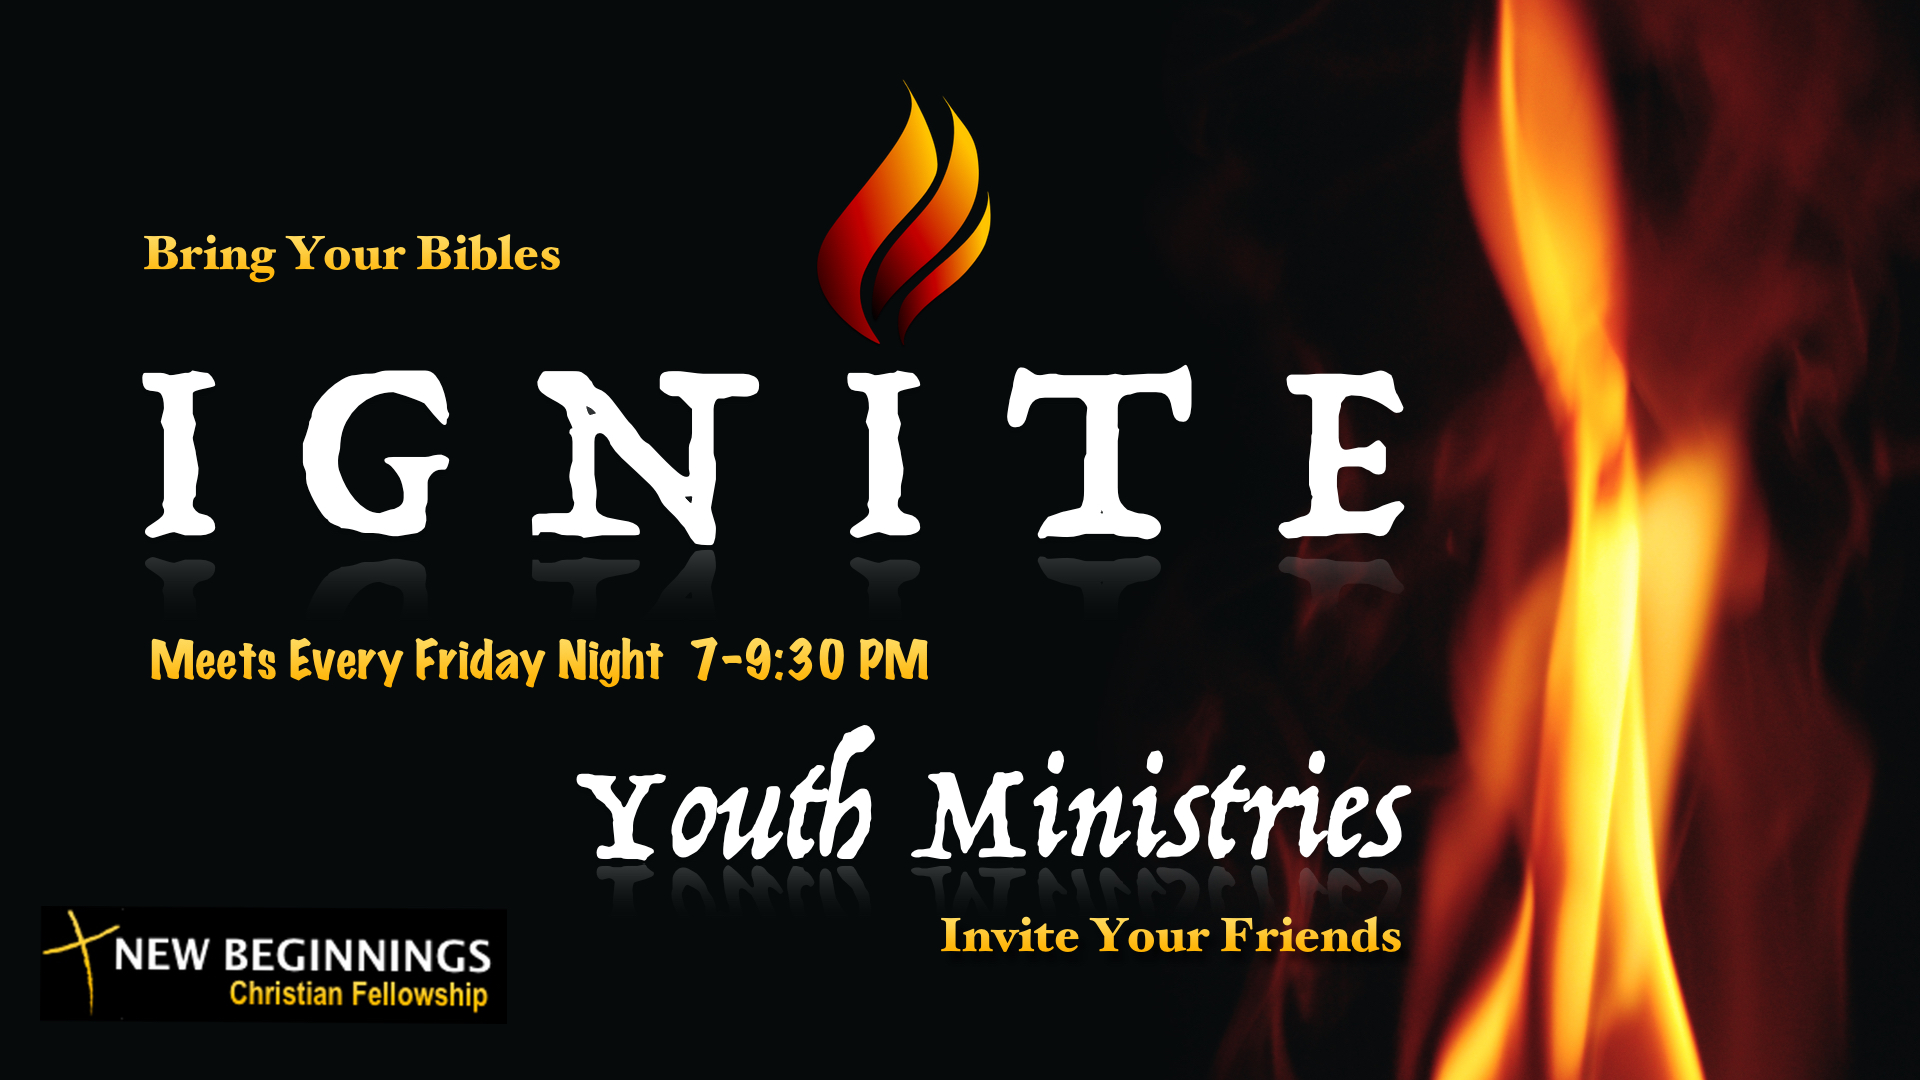 Ignite Yoiuth Ministries